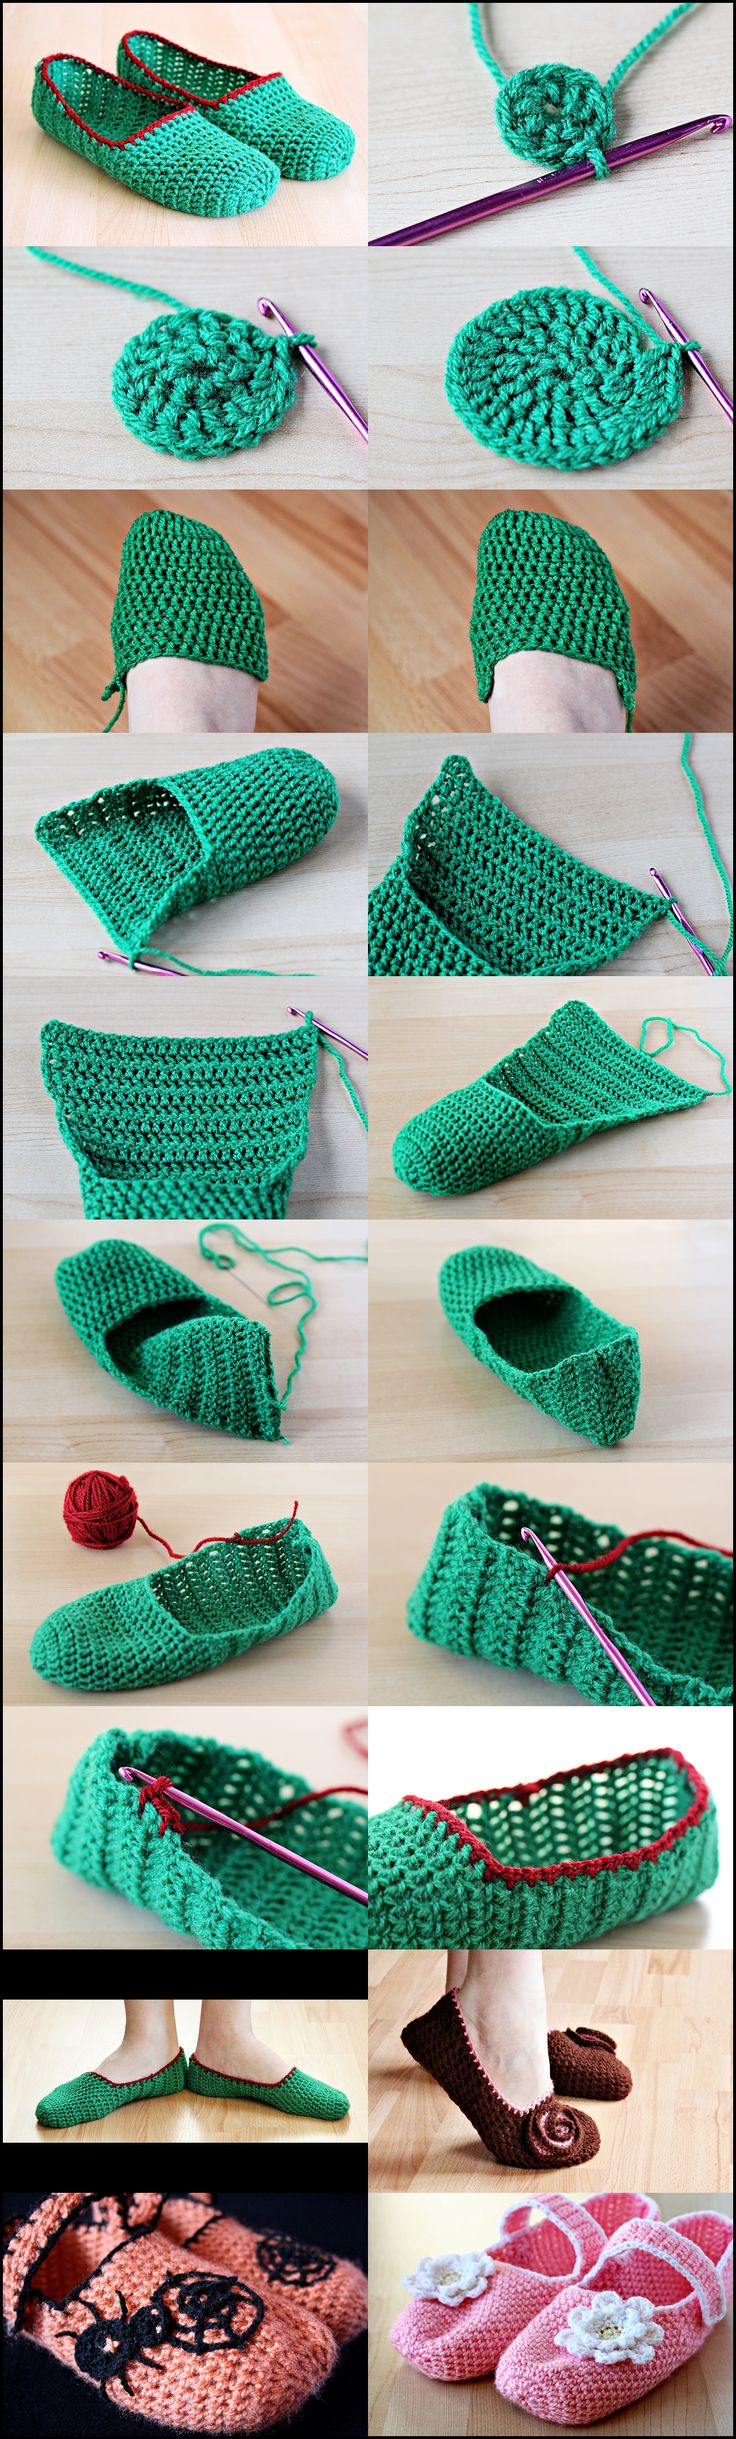 DIY Simple Crochet Slippers